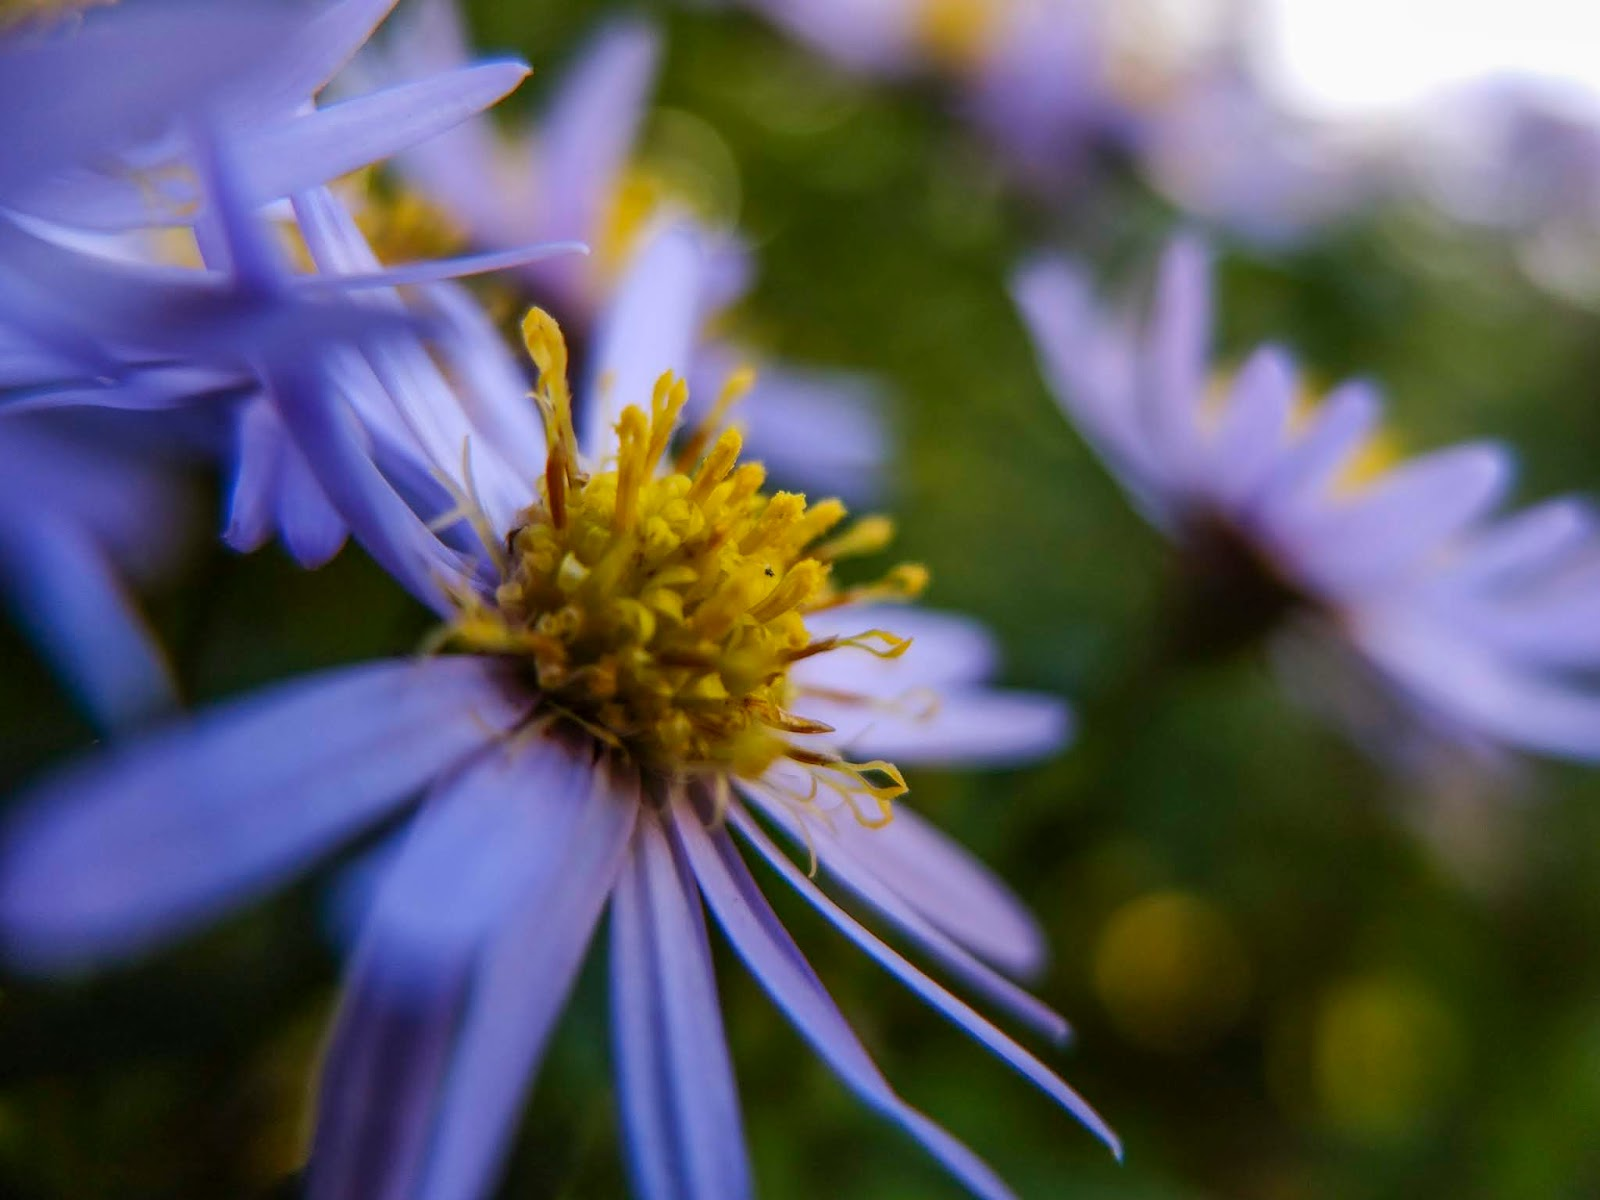 A close up of a purple Aster flower with a yellow centre.